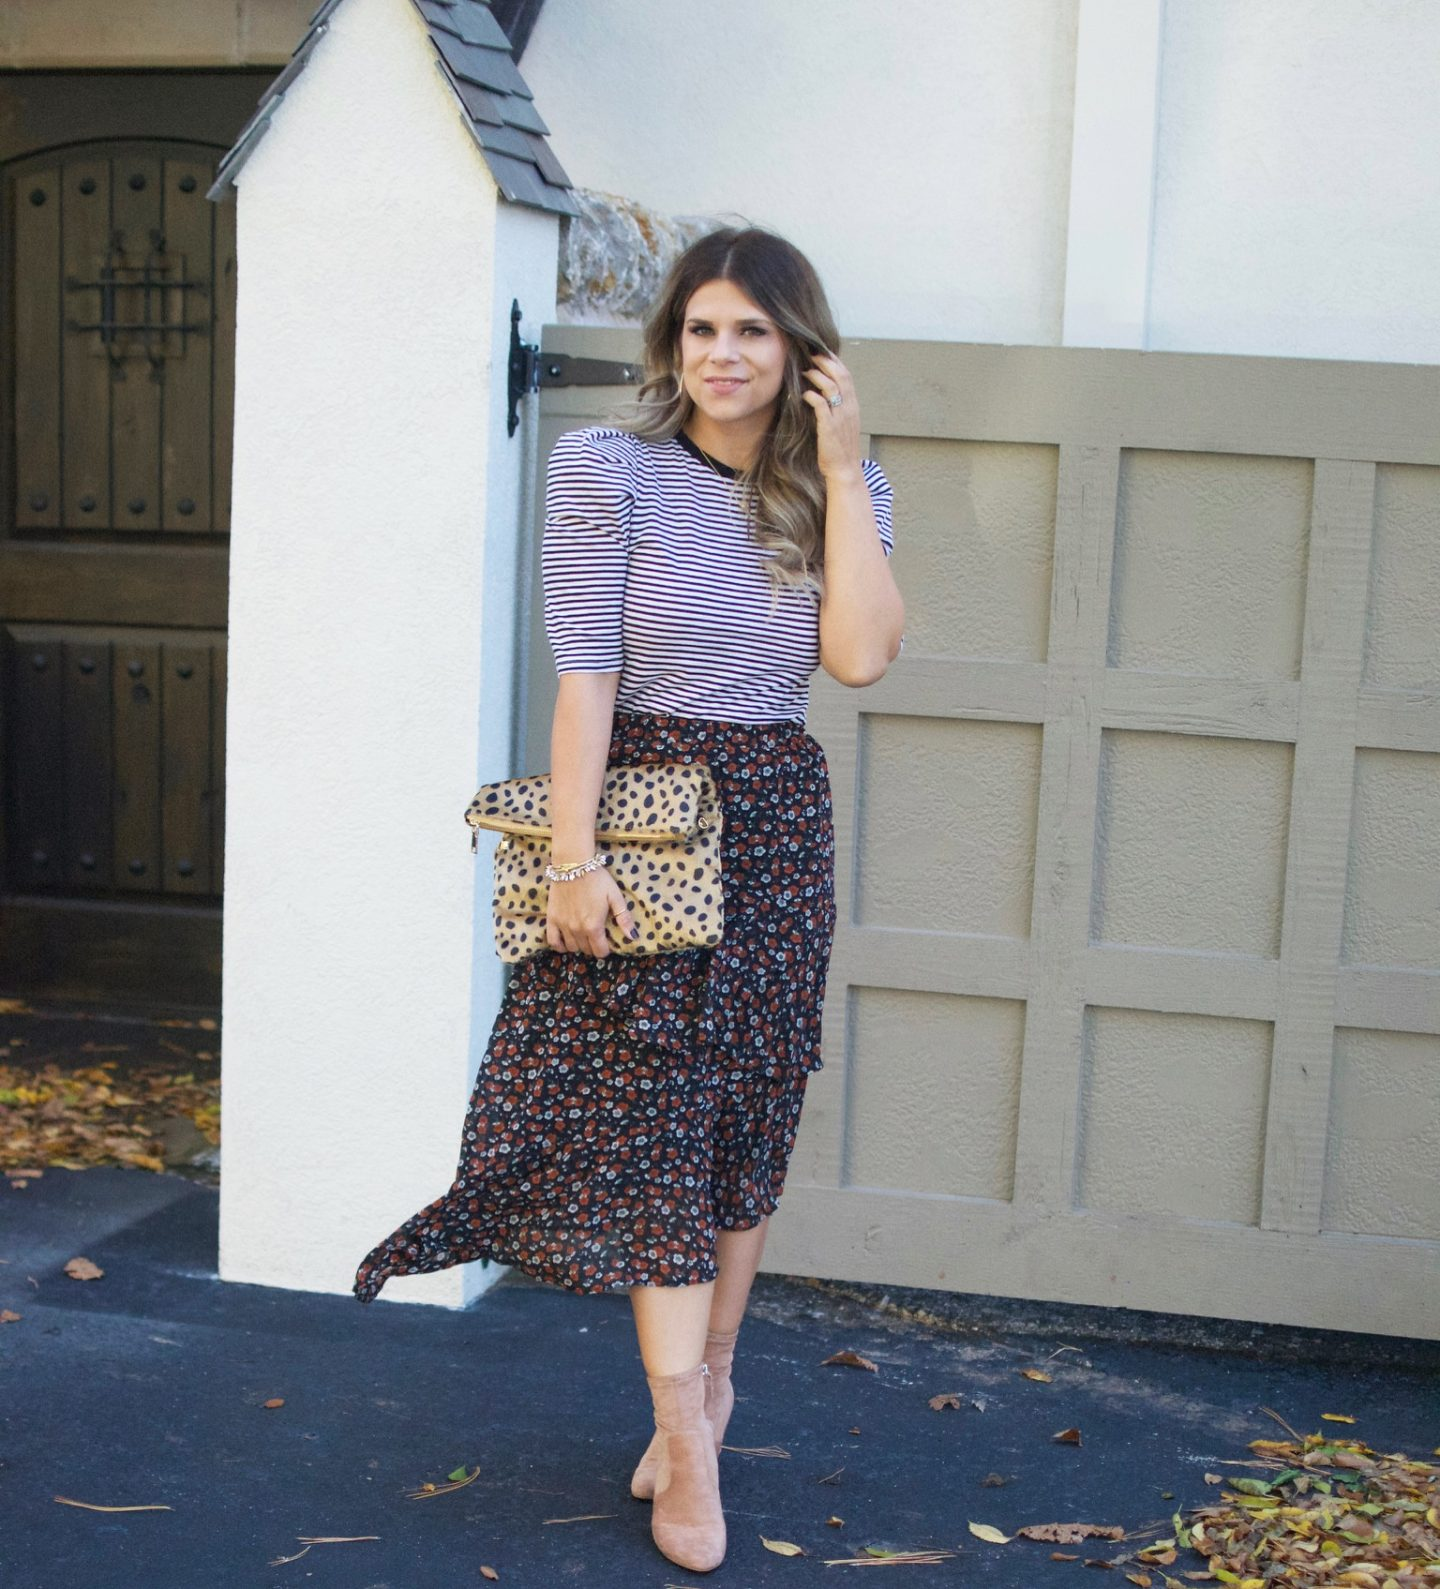 Target, Floral Midi Skirt, Leopard Clutch, Sock Booties, Stella & Dot